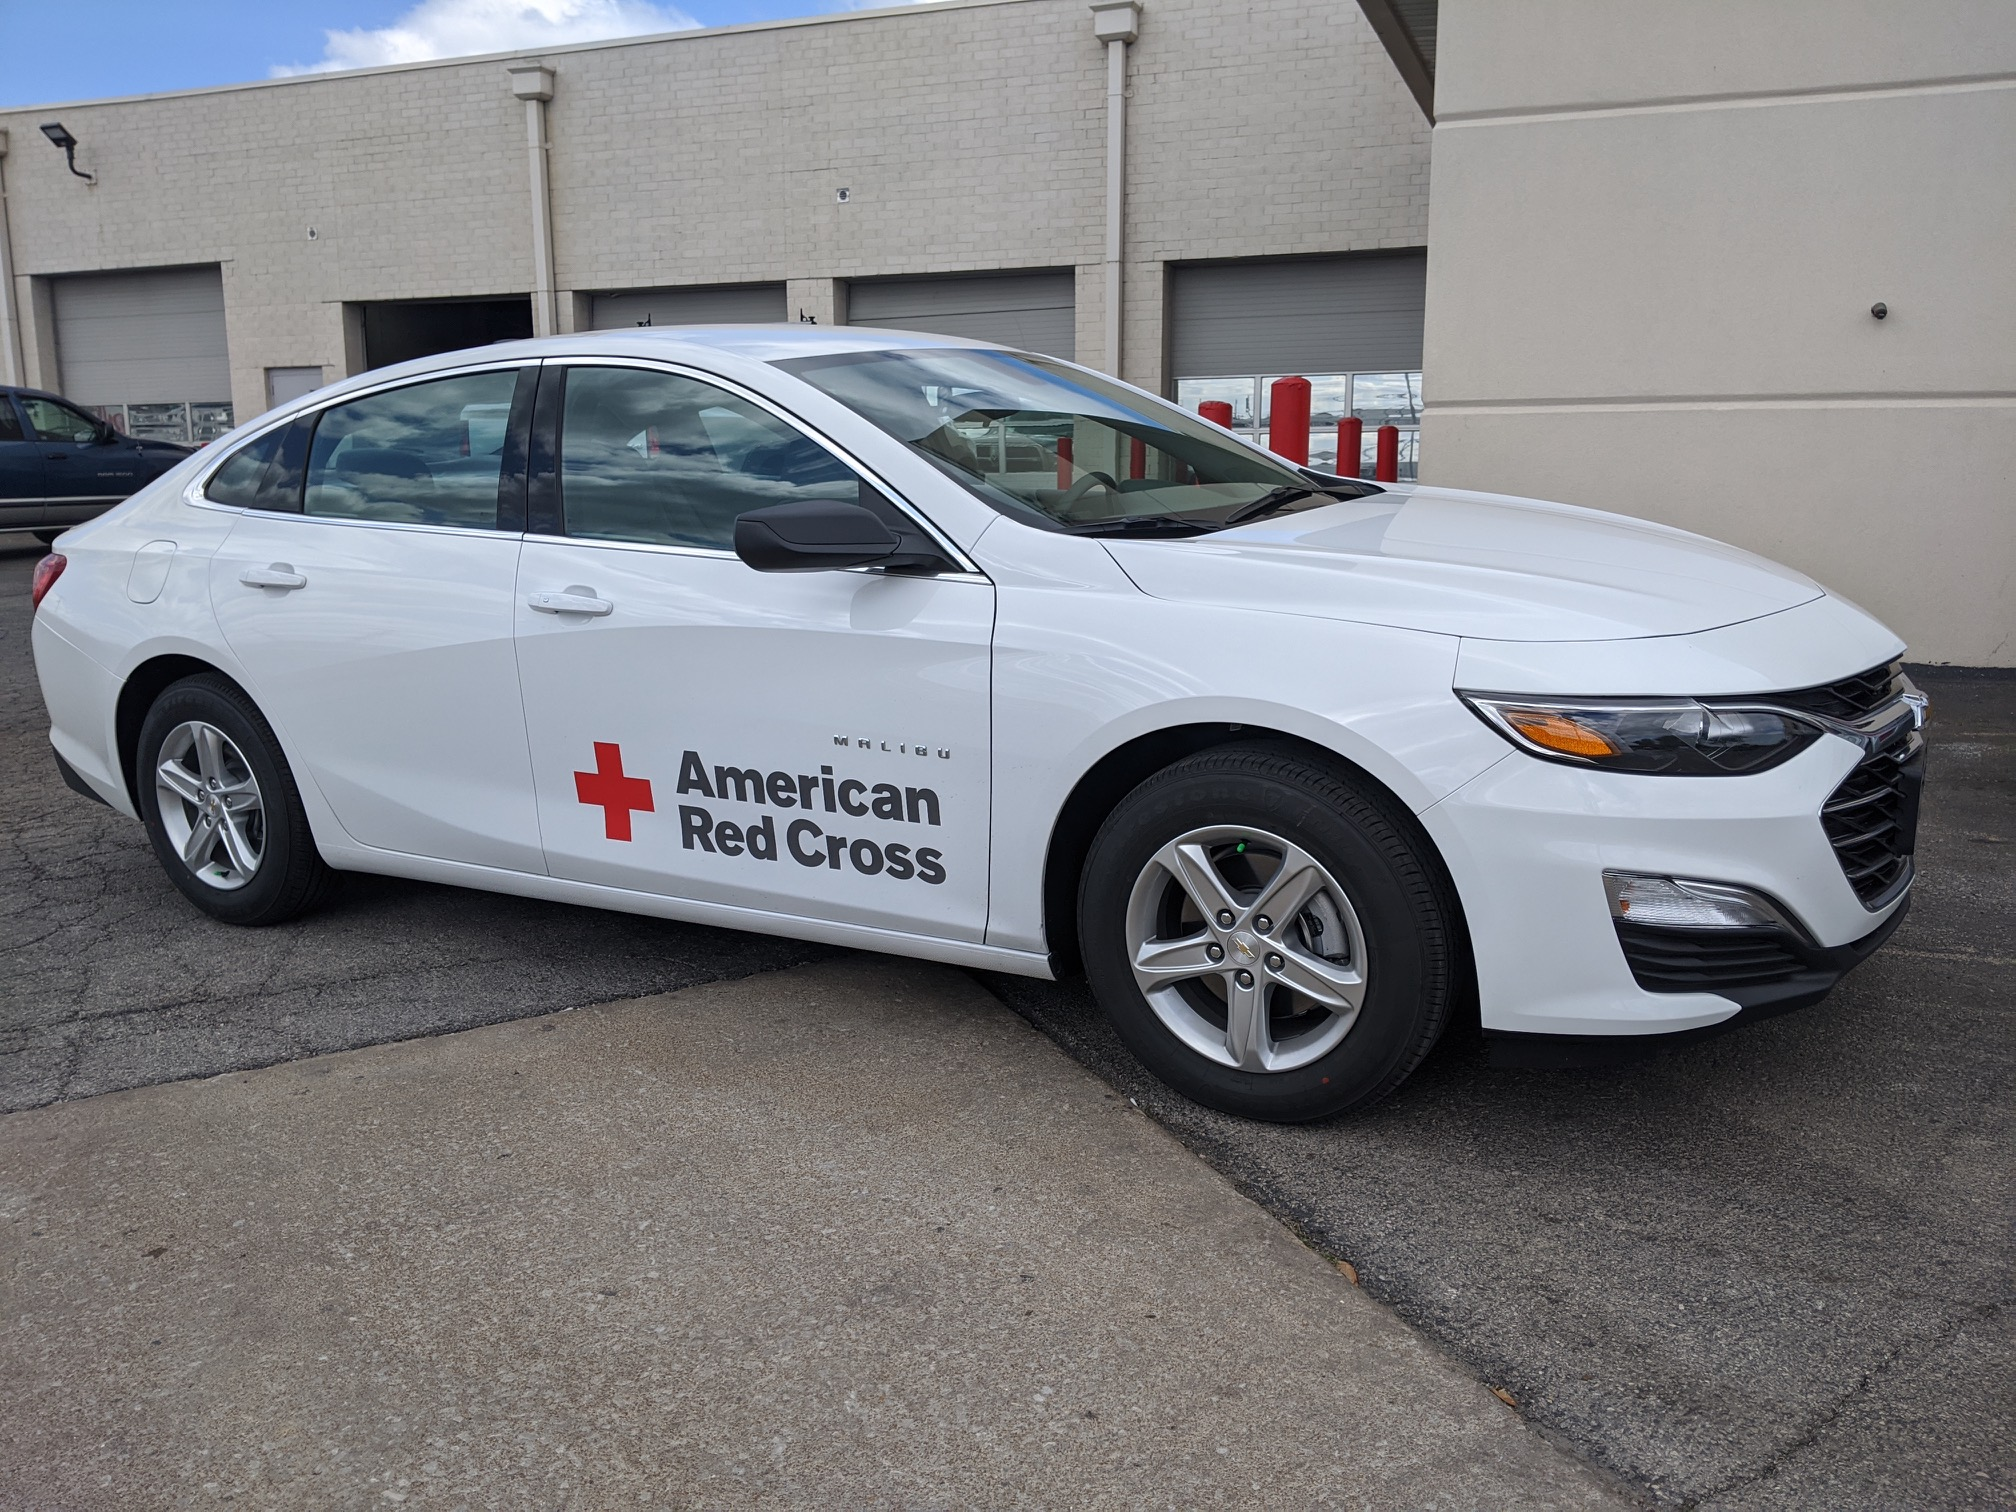 White car with American Red Cross logo on the side